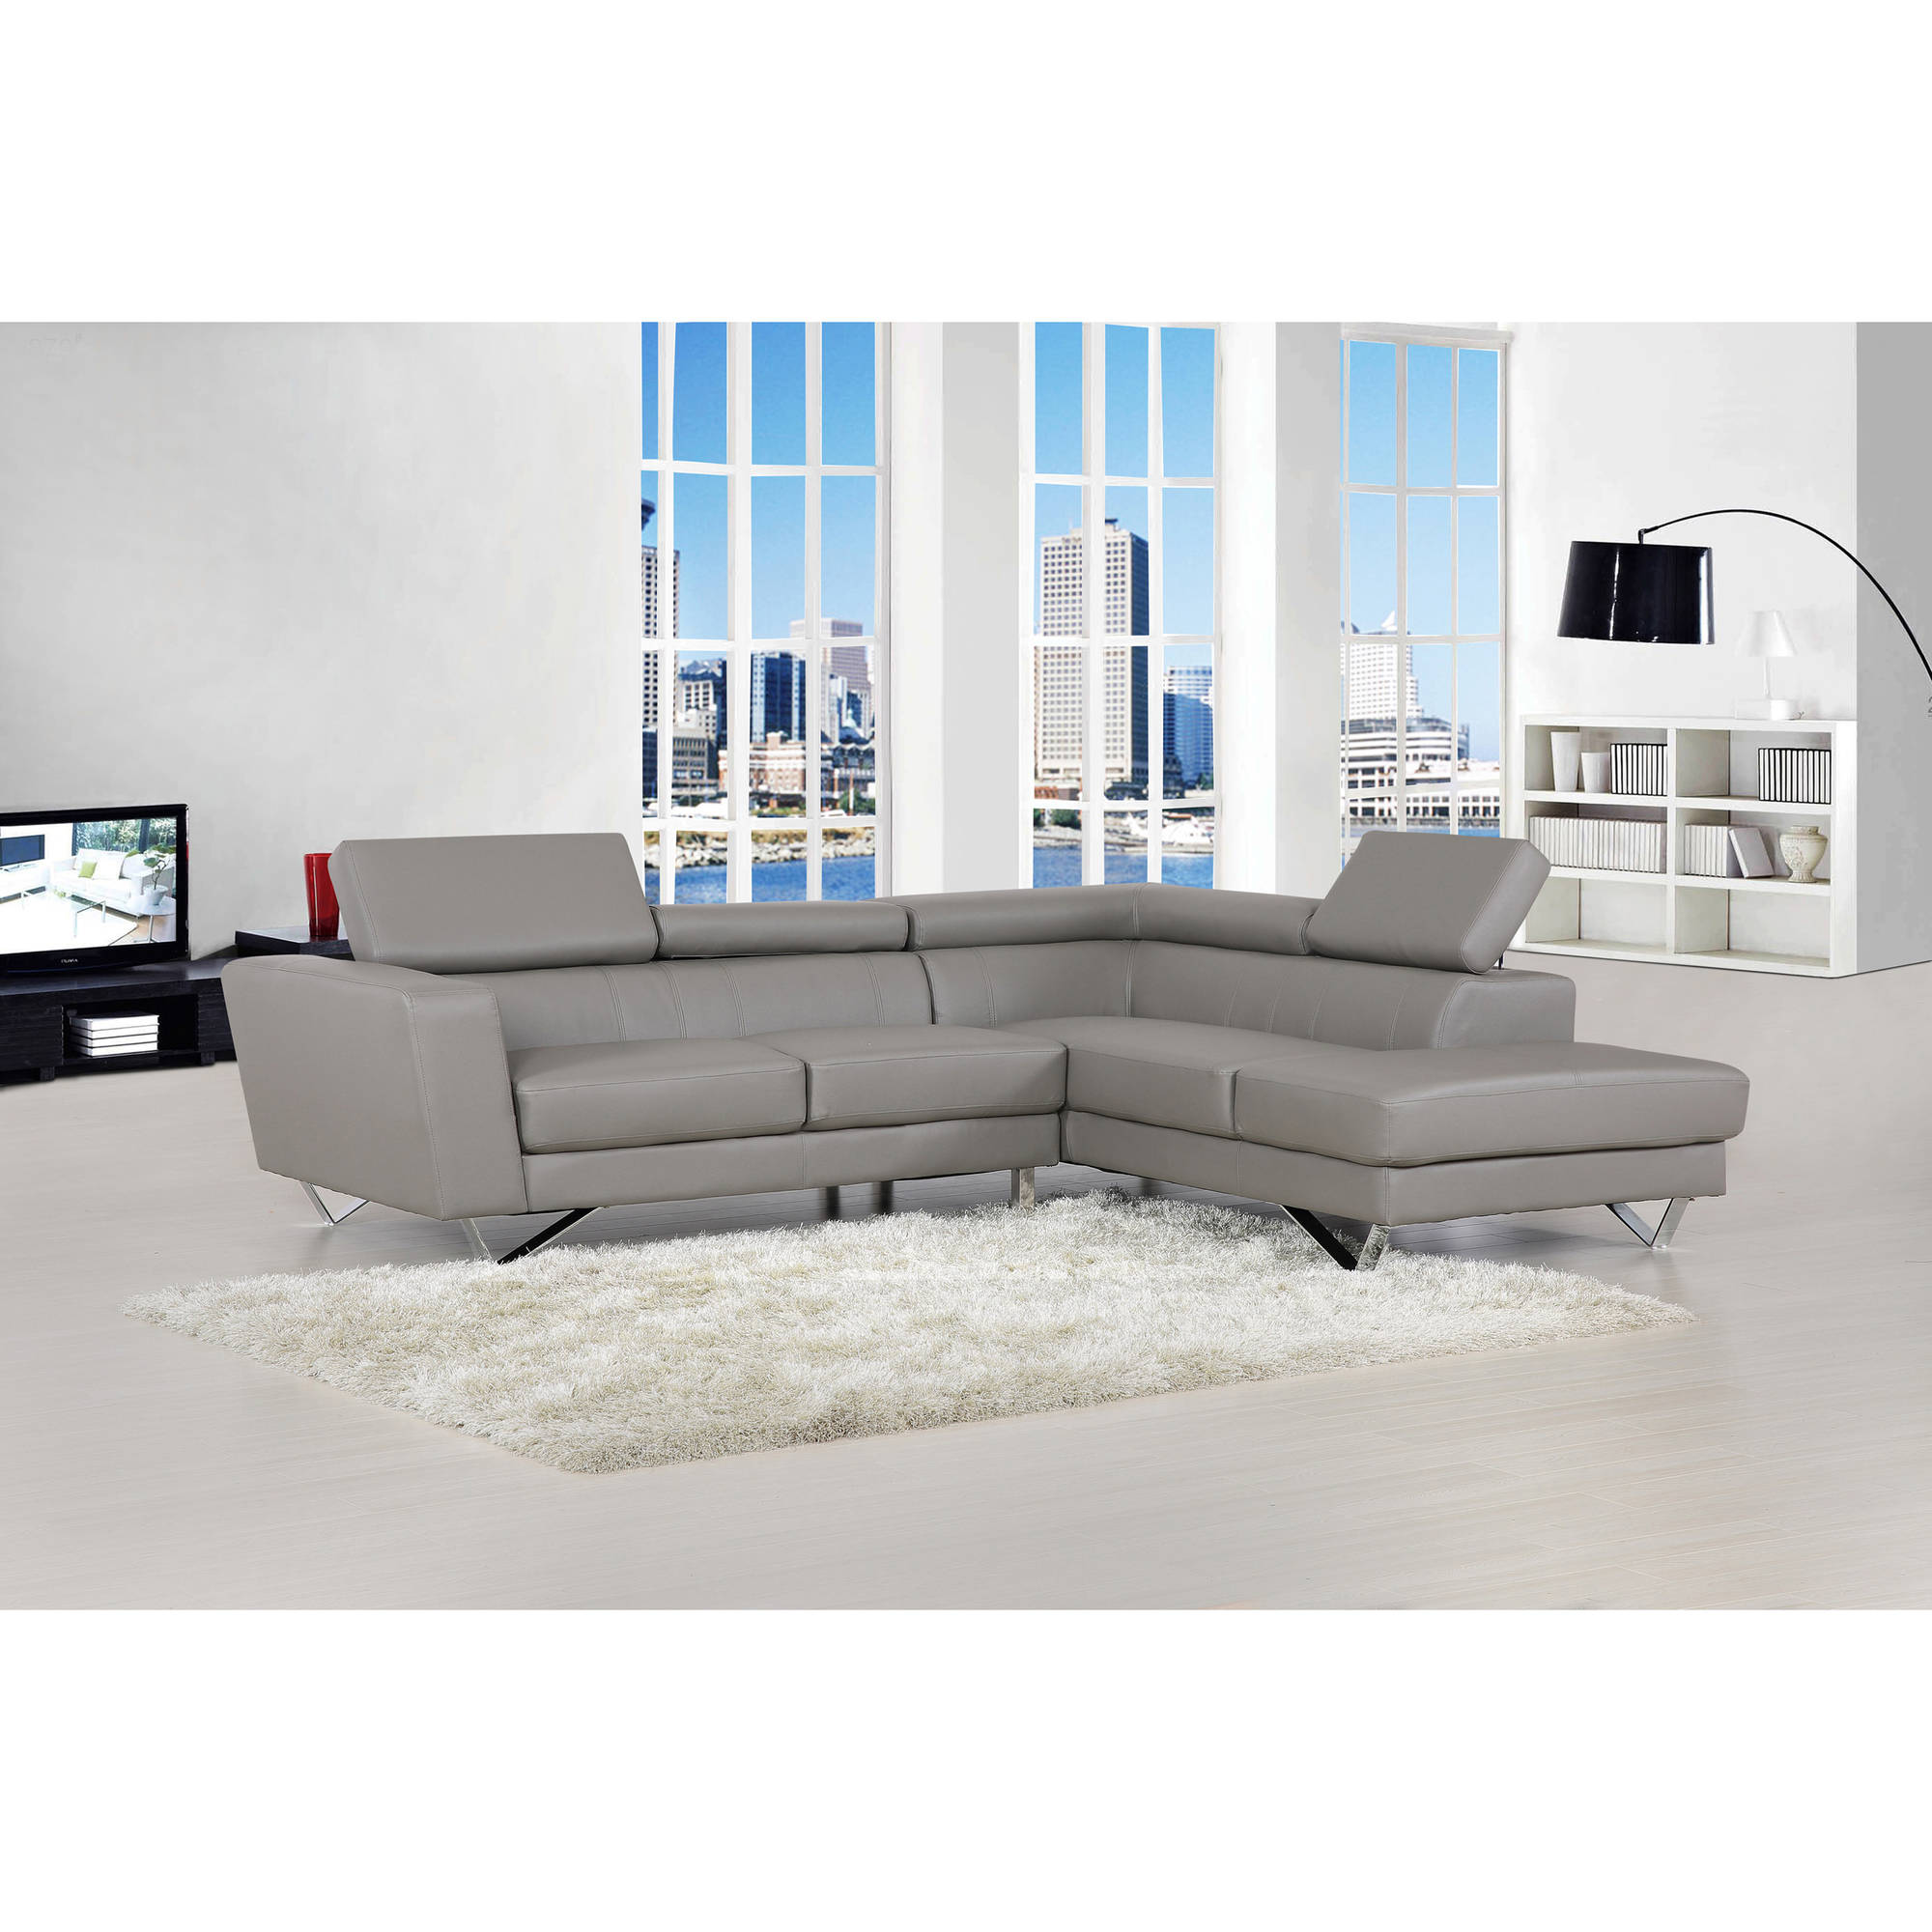 Delia Modern Bonded Leather Right Facing 2-Piece Sectional Sofa, Grey